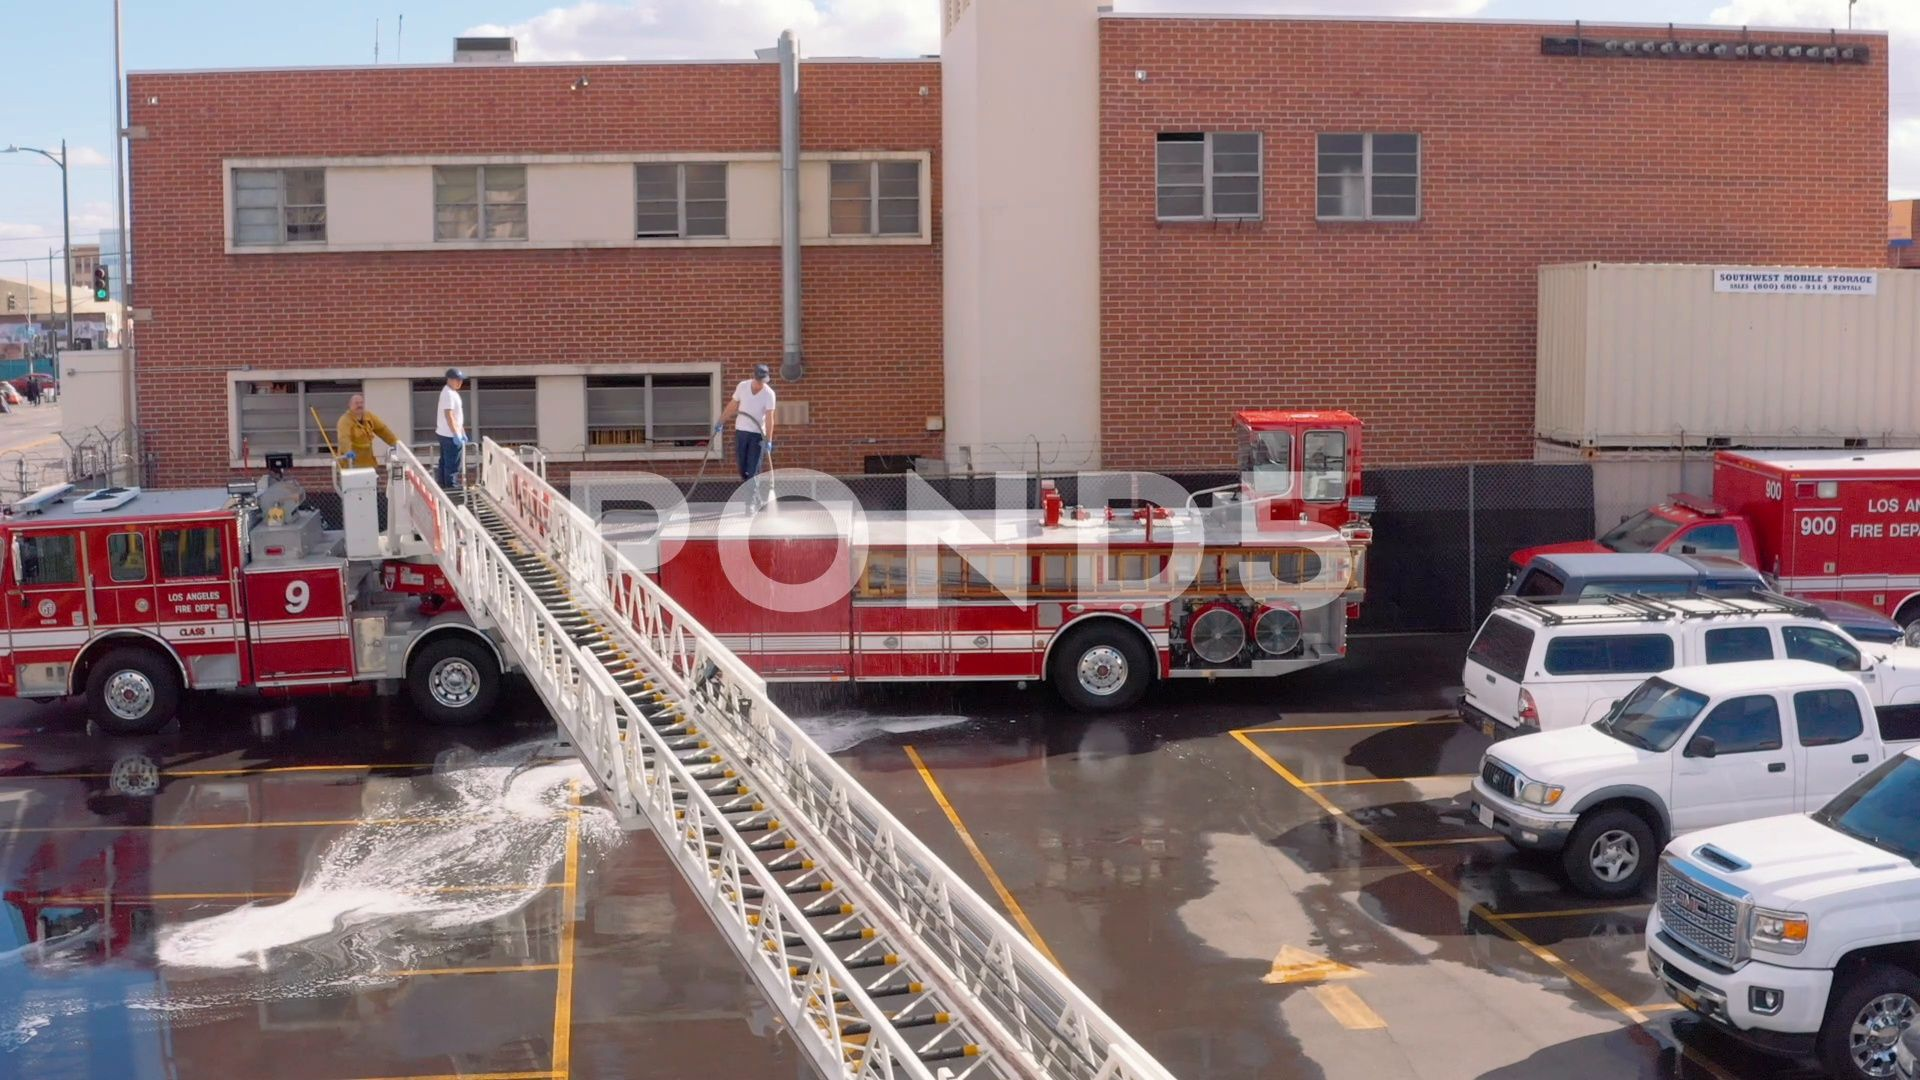 The Busiest Fire Station 9 In La Firefighters Washing Stock